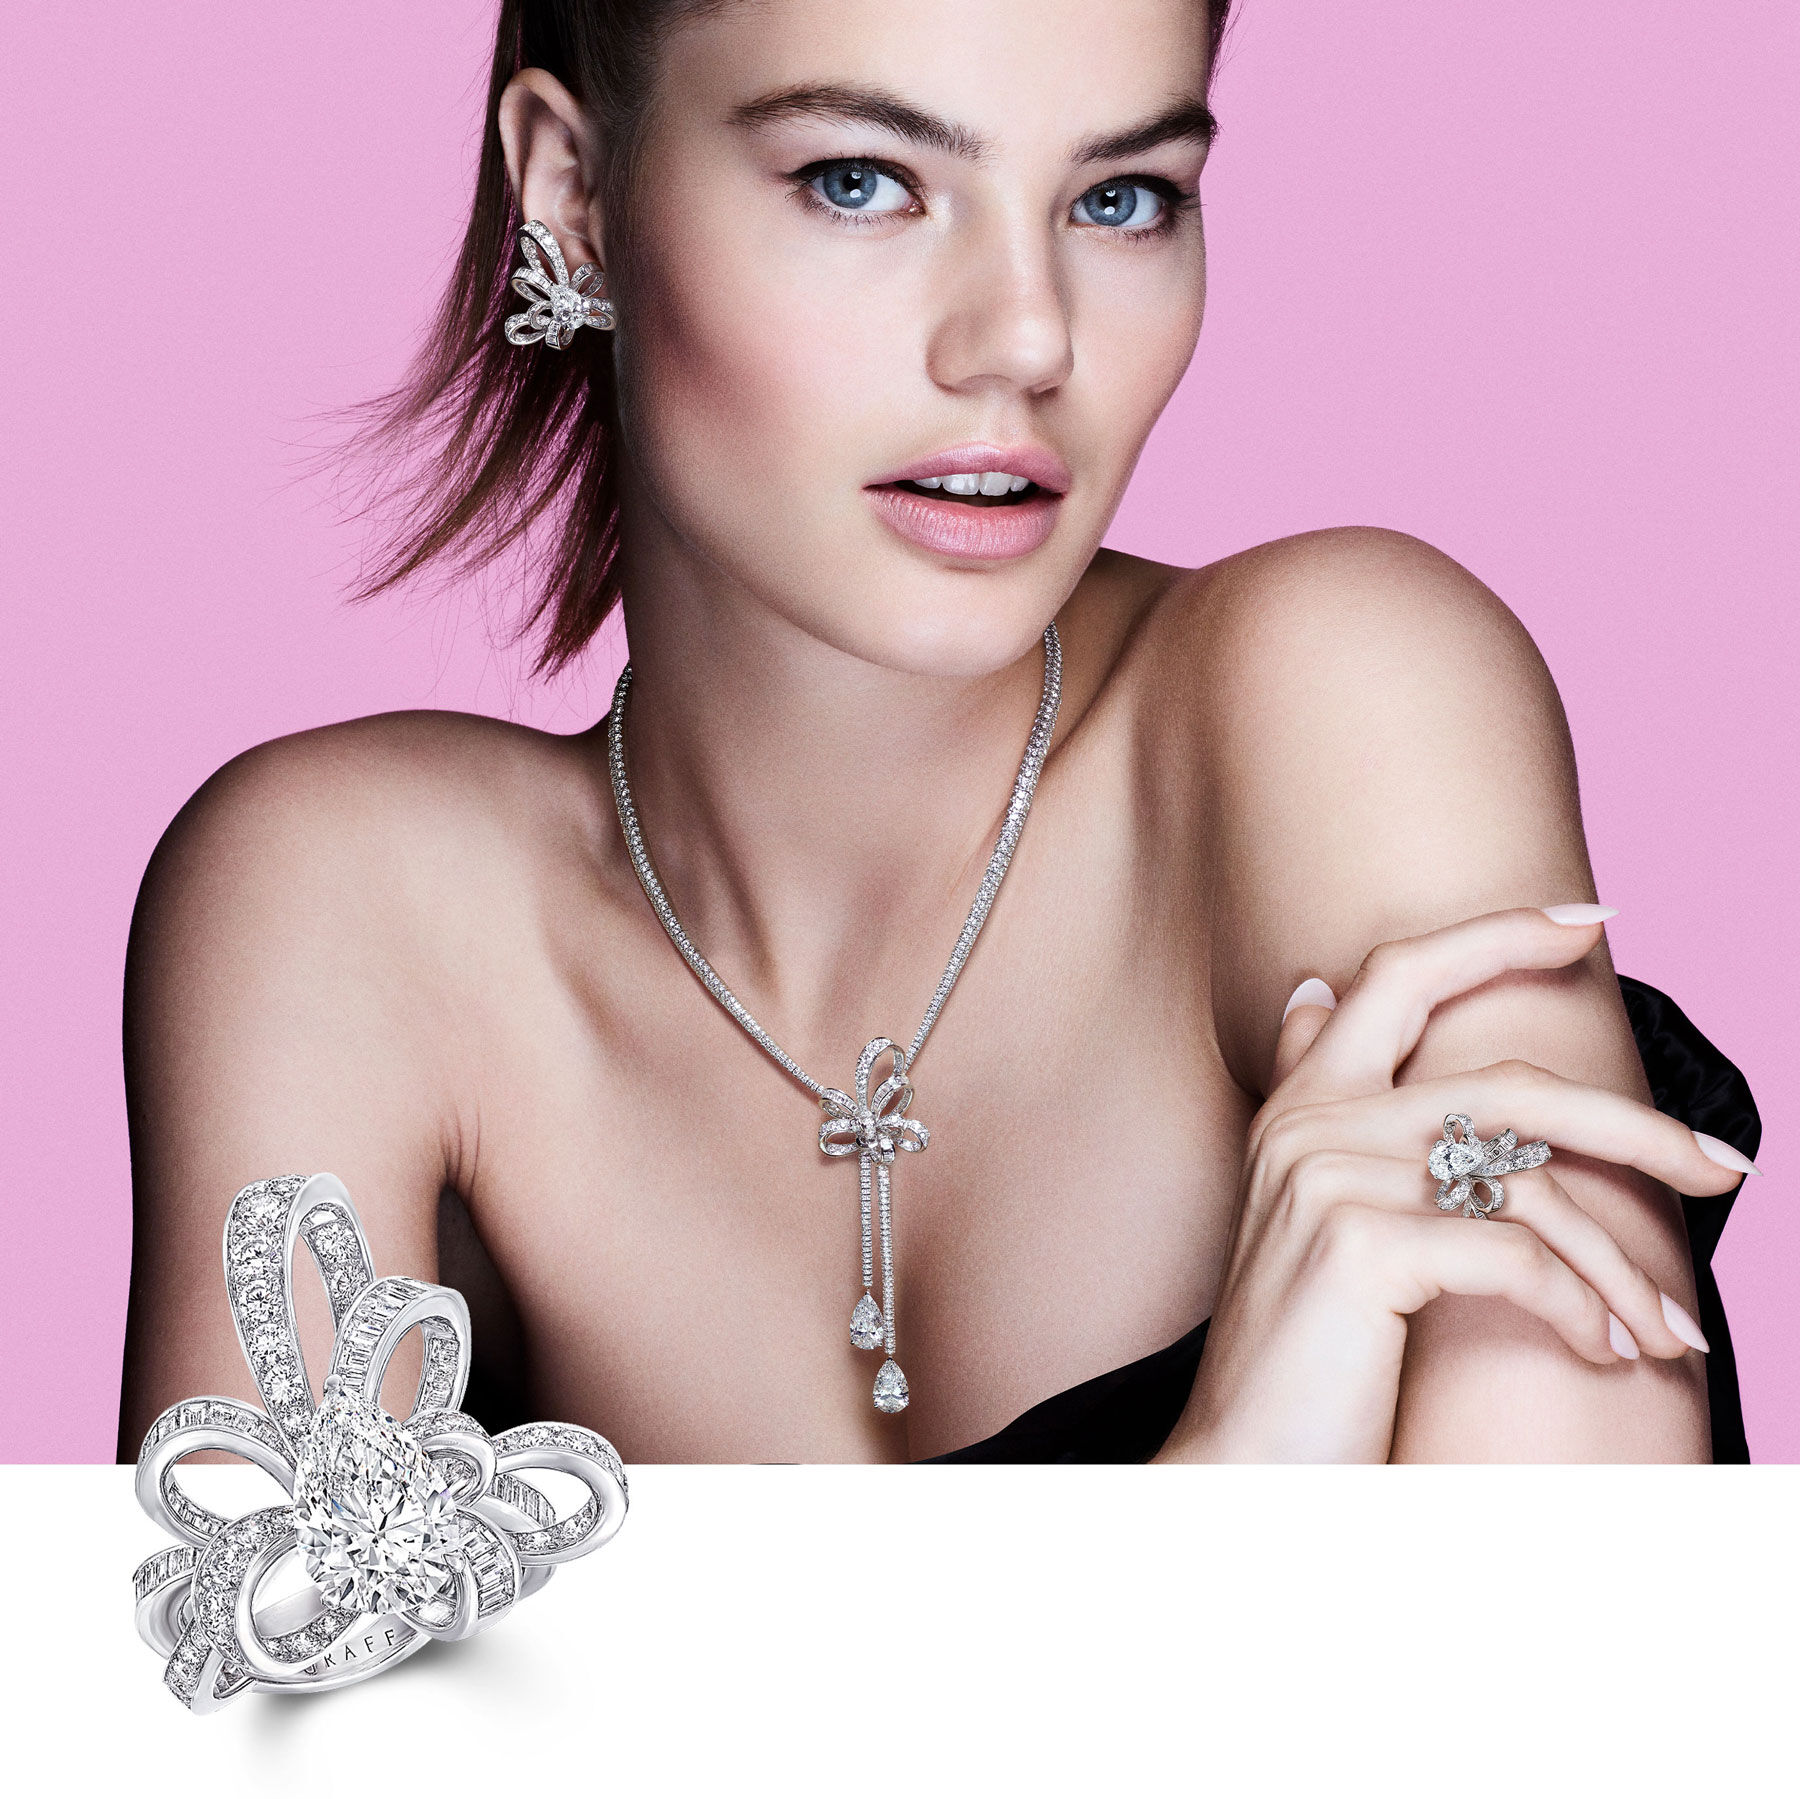 Model wears the Graff Tilda's Bow diamond jewellery with a featured ring